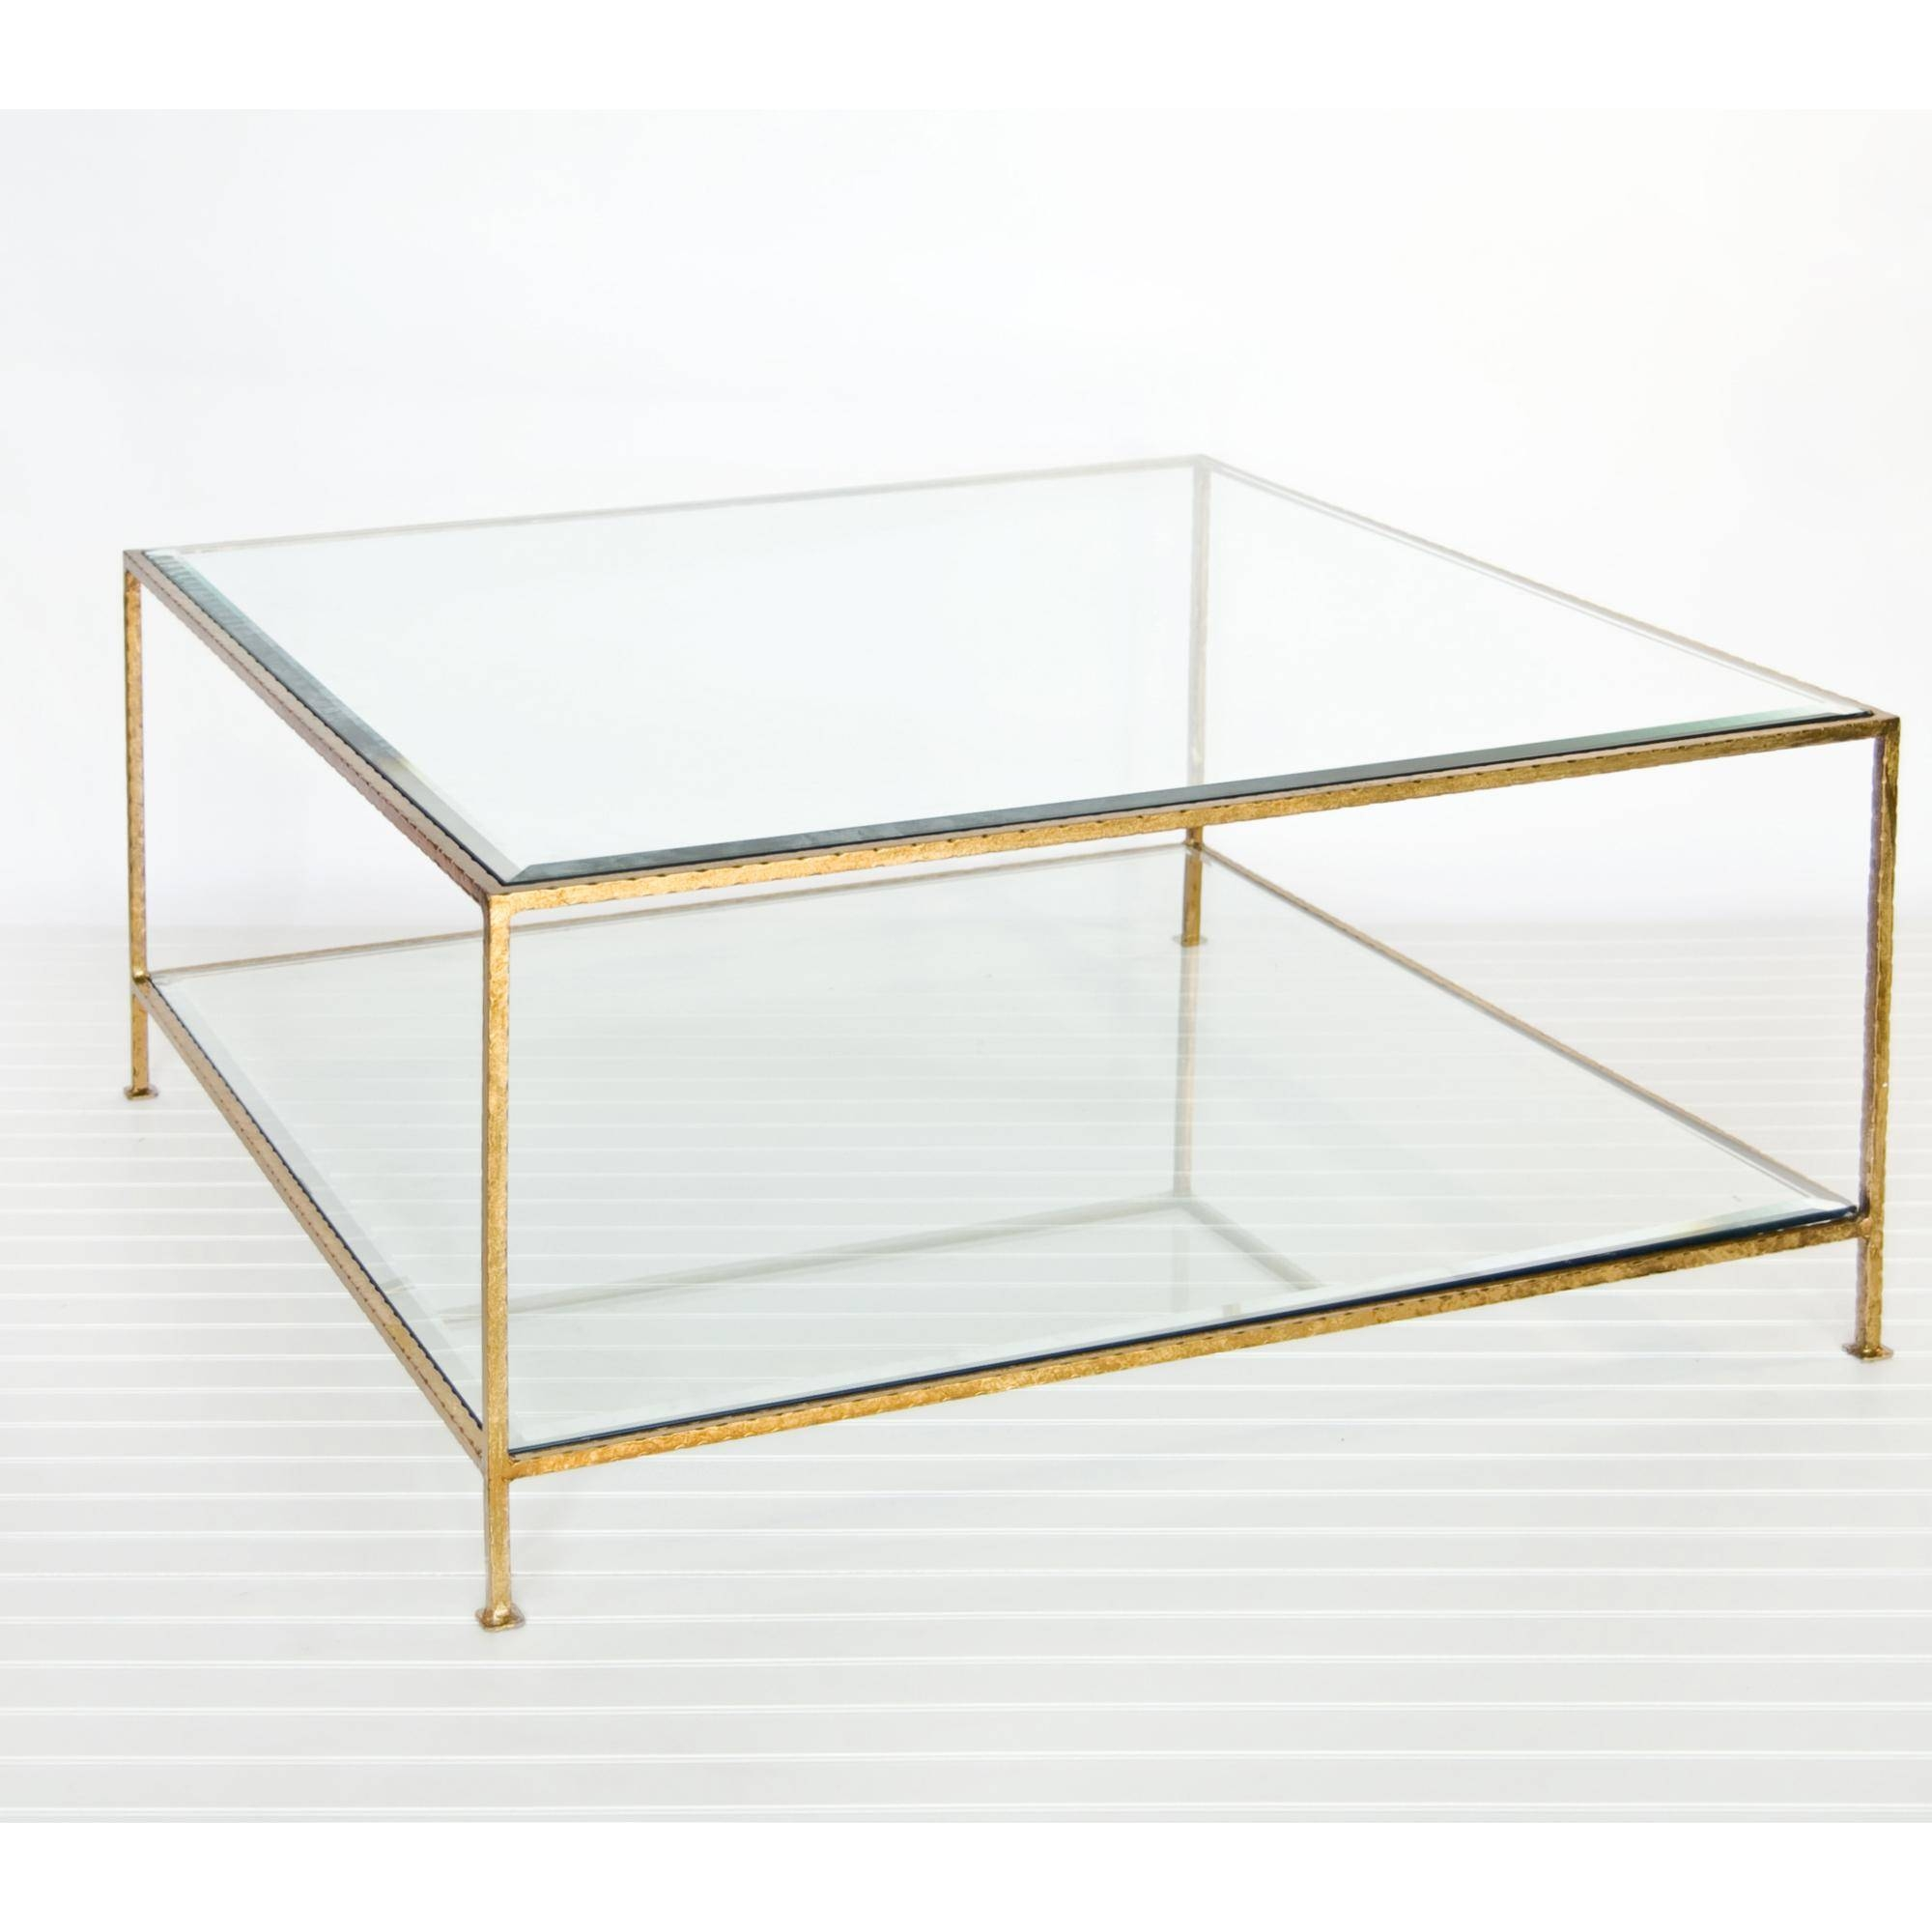 Coffee Table: Fascinating Large Glass Coffee Table Designs Extra inside Glass Coffee Tables With Shelf (Image 9 of 30)